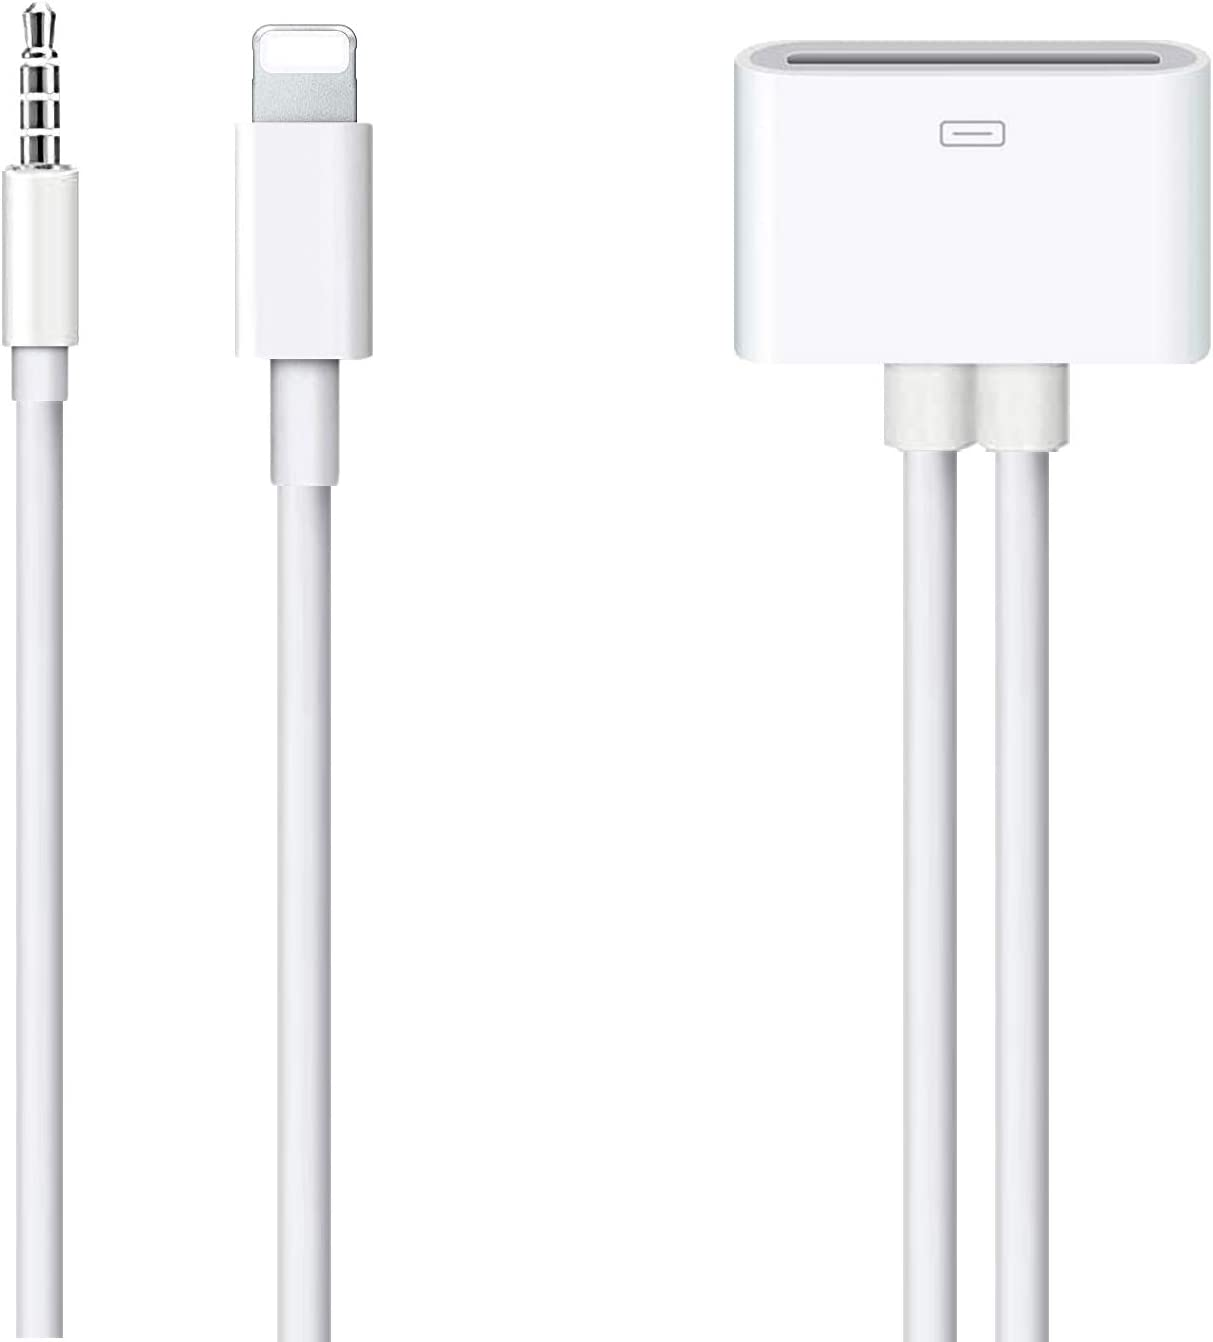 Lightning to 30-Pin Adapter, ROSYCLO MFi Certified 8-Pin to 30 Pin Female Converter with 3.5mm AUX Audio Cable Charging Sync Cord Compatible iPhone 6s/6s Plus/6/6 Plus/SE/5s/5c/5/iPad Devices White